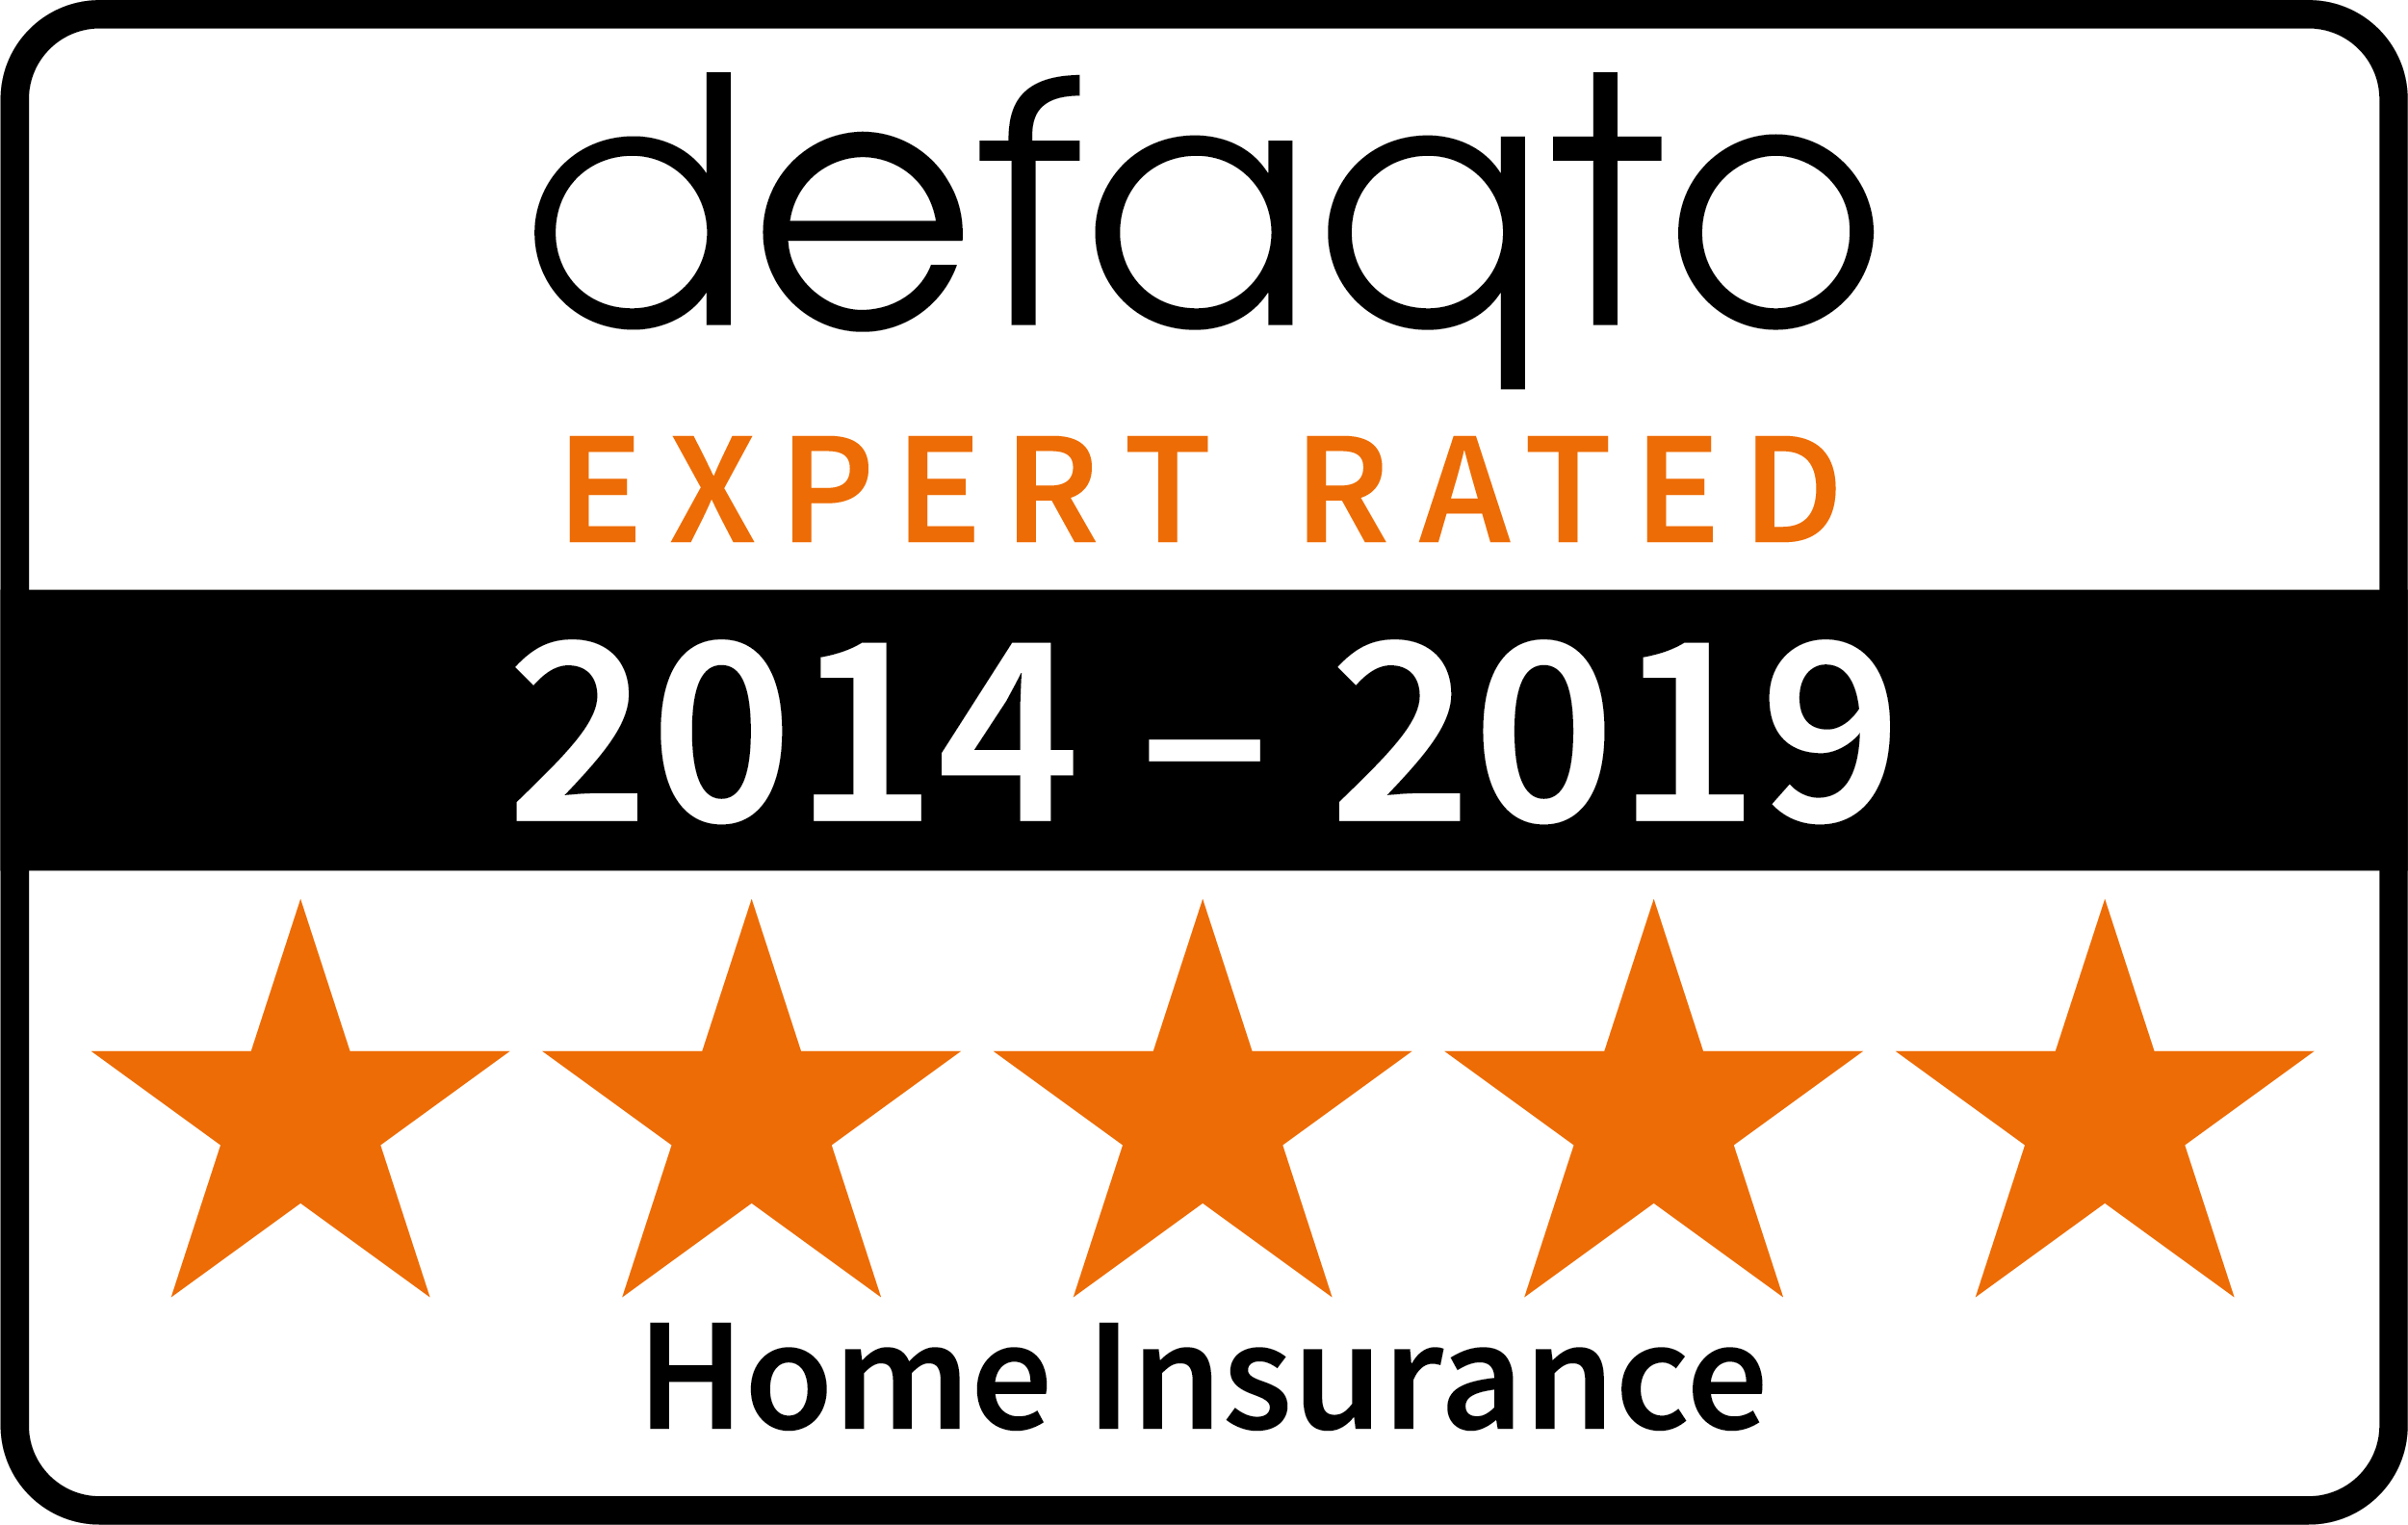 Home car multi year Defaqto logo 2019